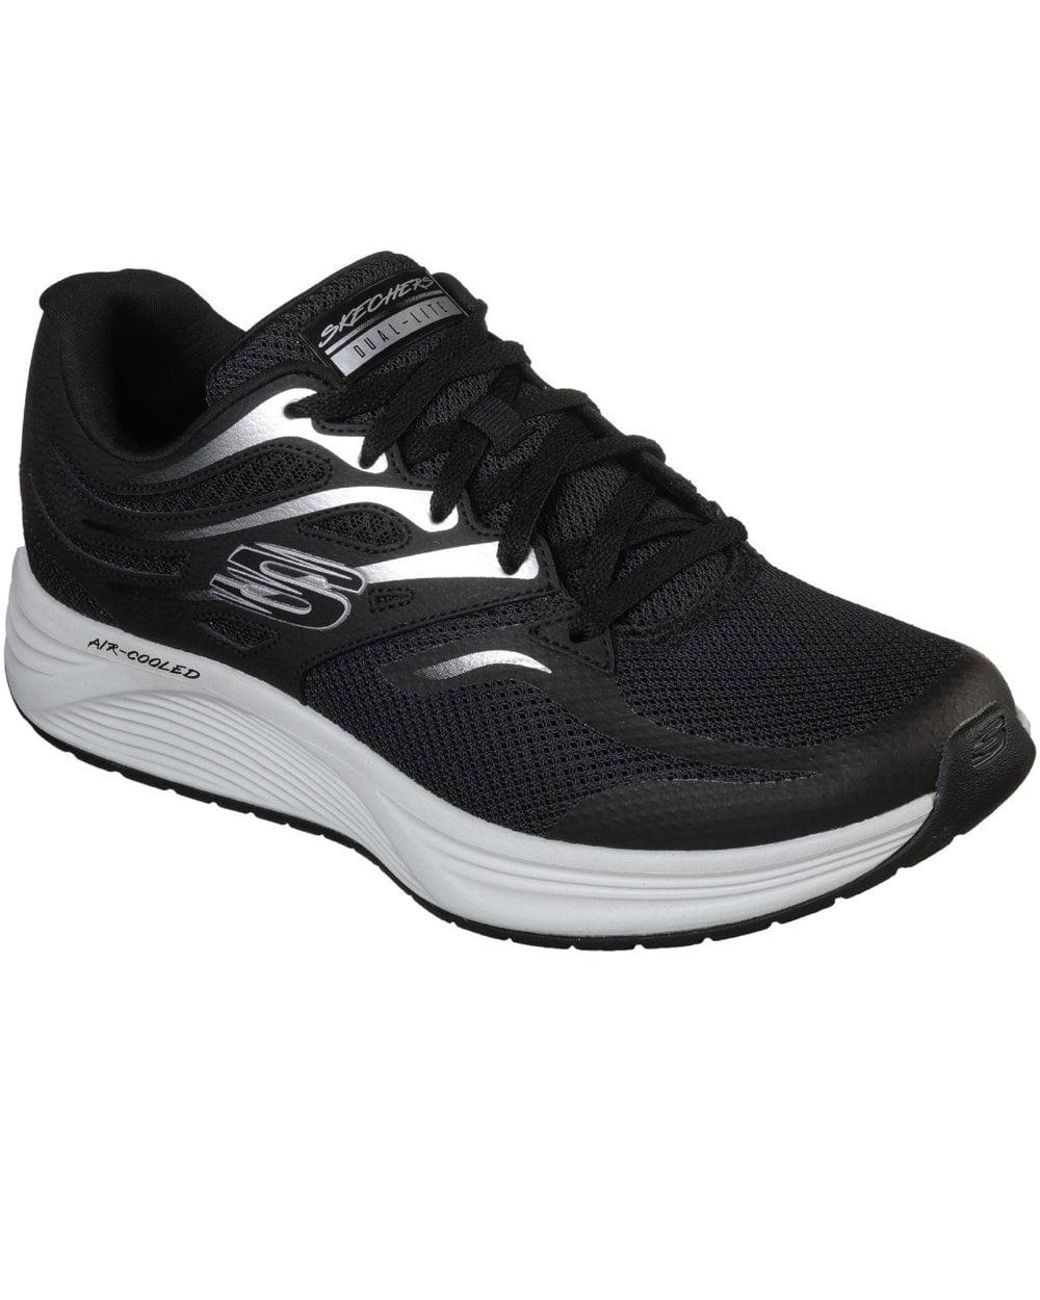 Black Skyline Brightshore Mens Lace Up Athletic Sneakers